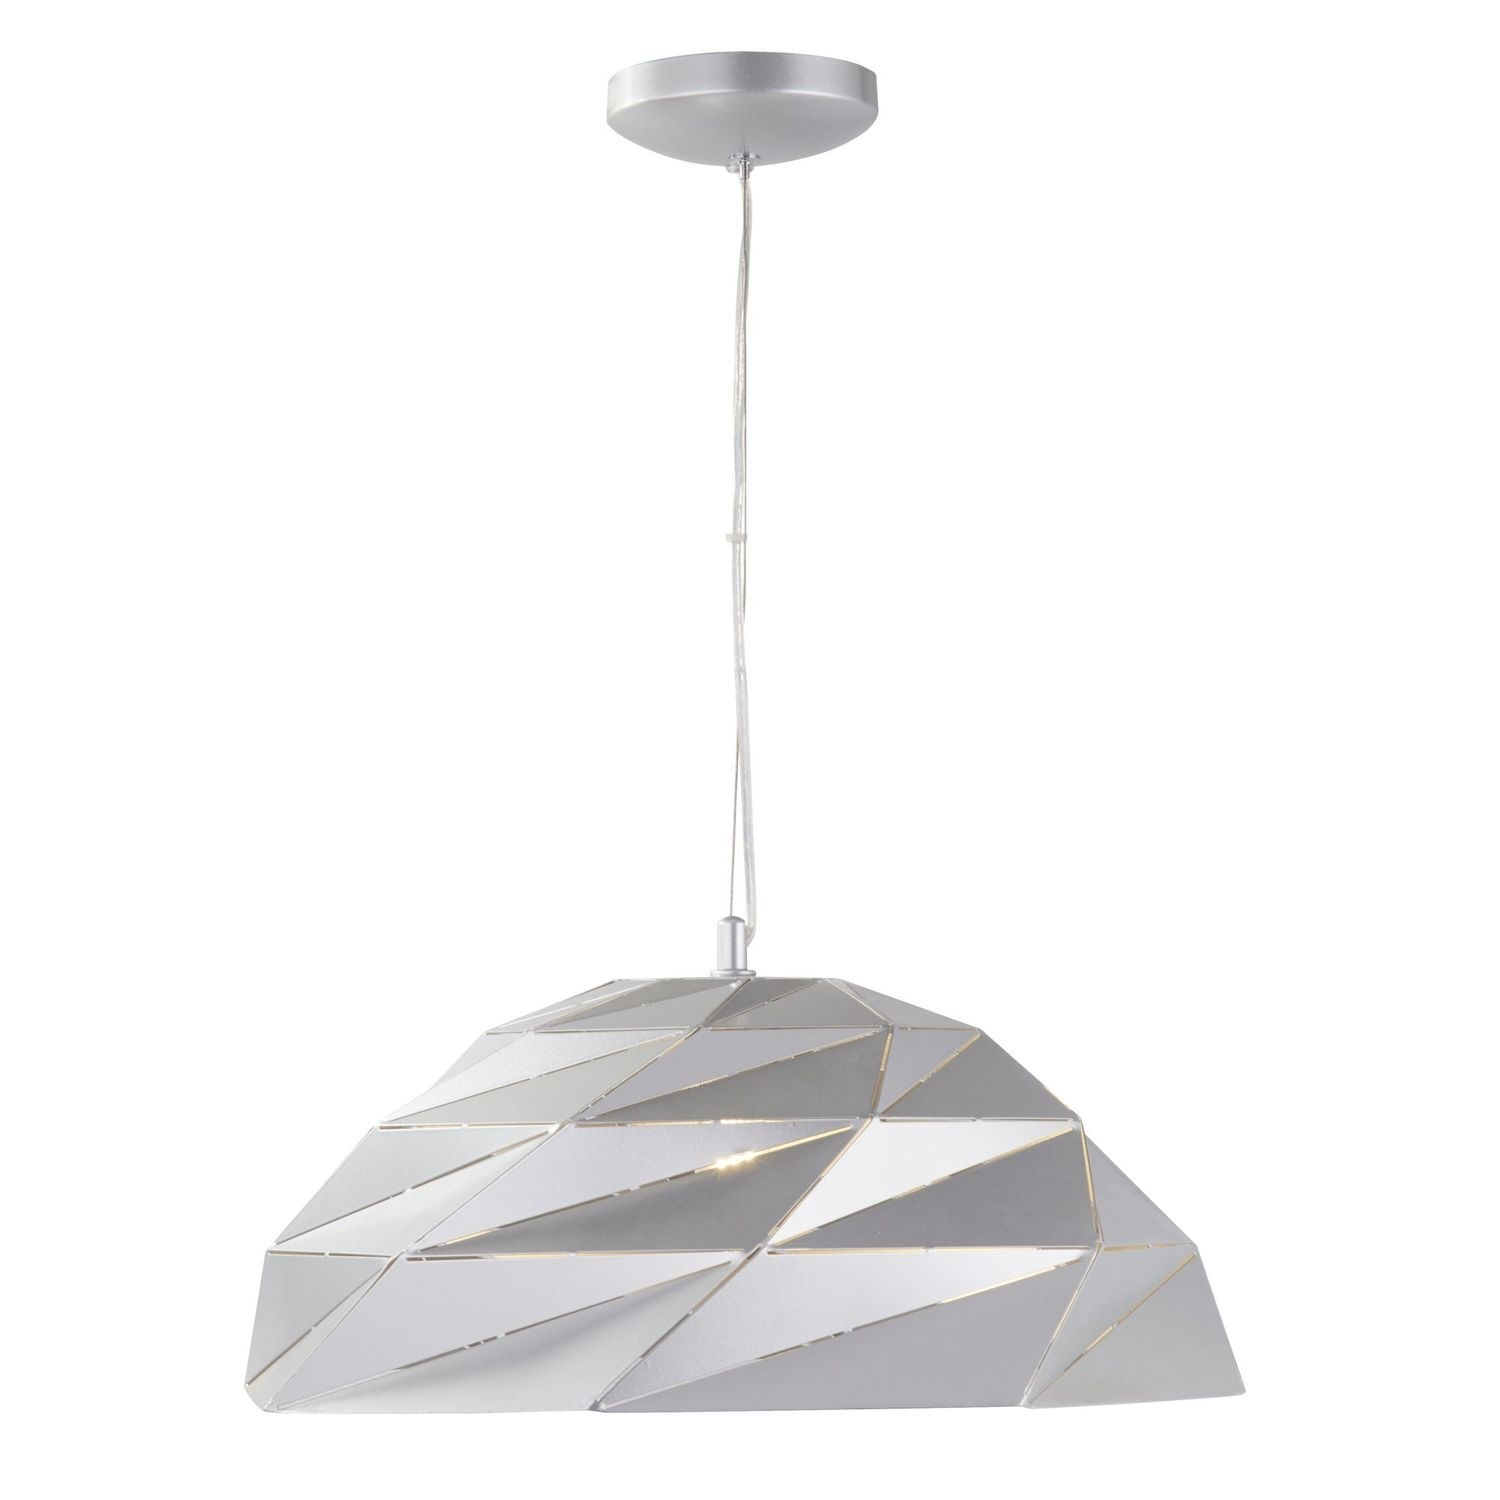 Silver Pendant Light with Geometric Shade - Origami